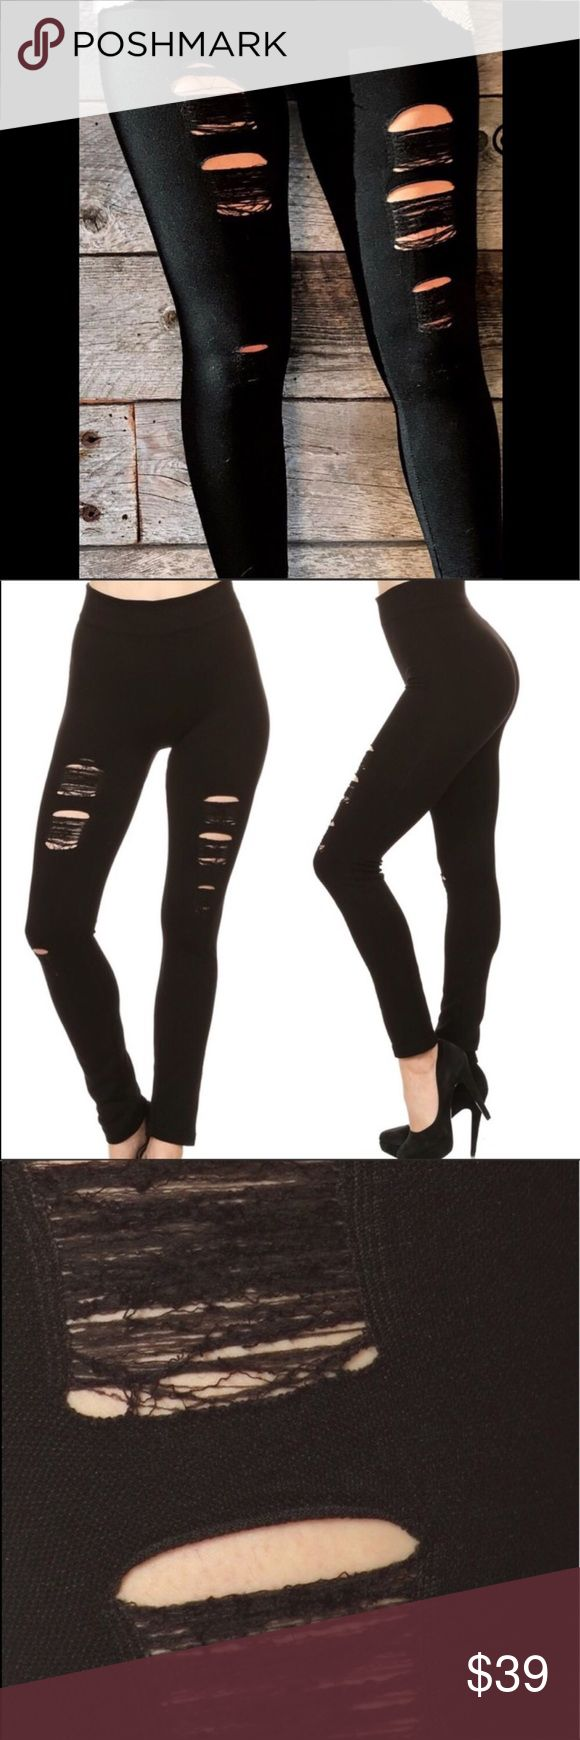 WILA Black Distressed Leggings 🕶Super comfortable! 🌸High waisted! 🔥Very Sexy!    Brand new with tags. Only 3 left Spandex cotton blend Puts LLR leggings to shame! Suggested retail price $50 WILA Pants Leggings